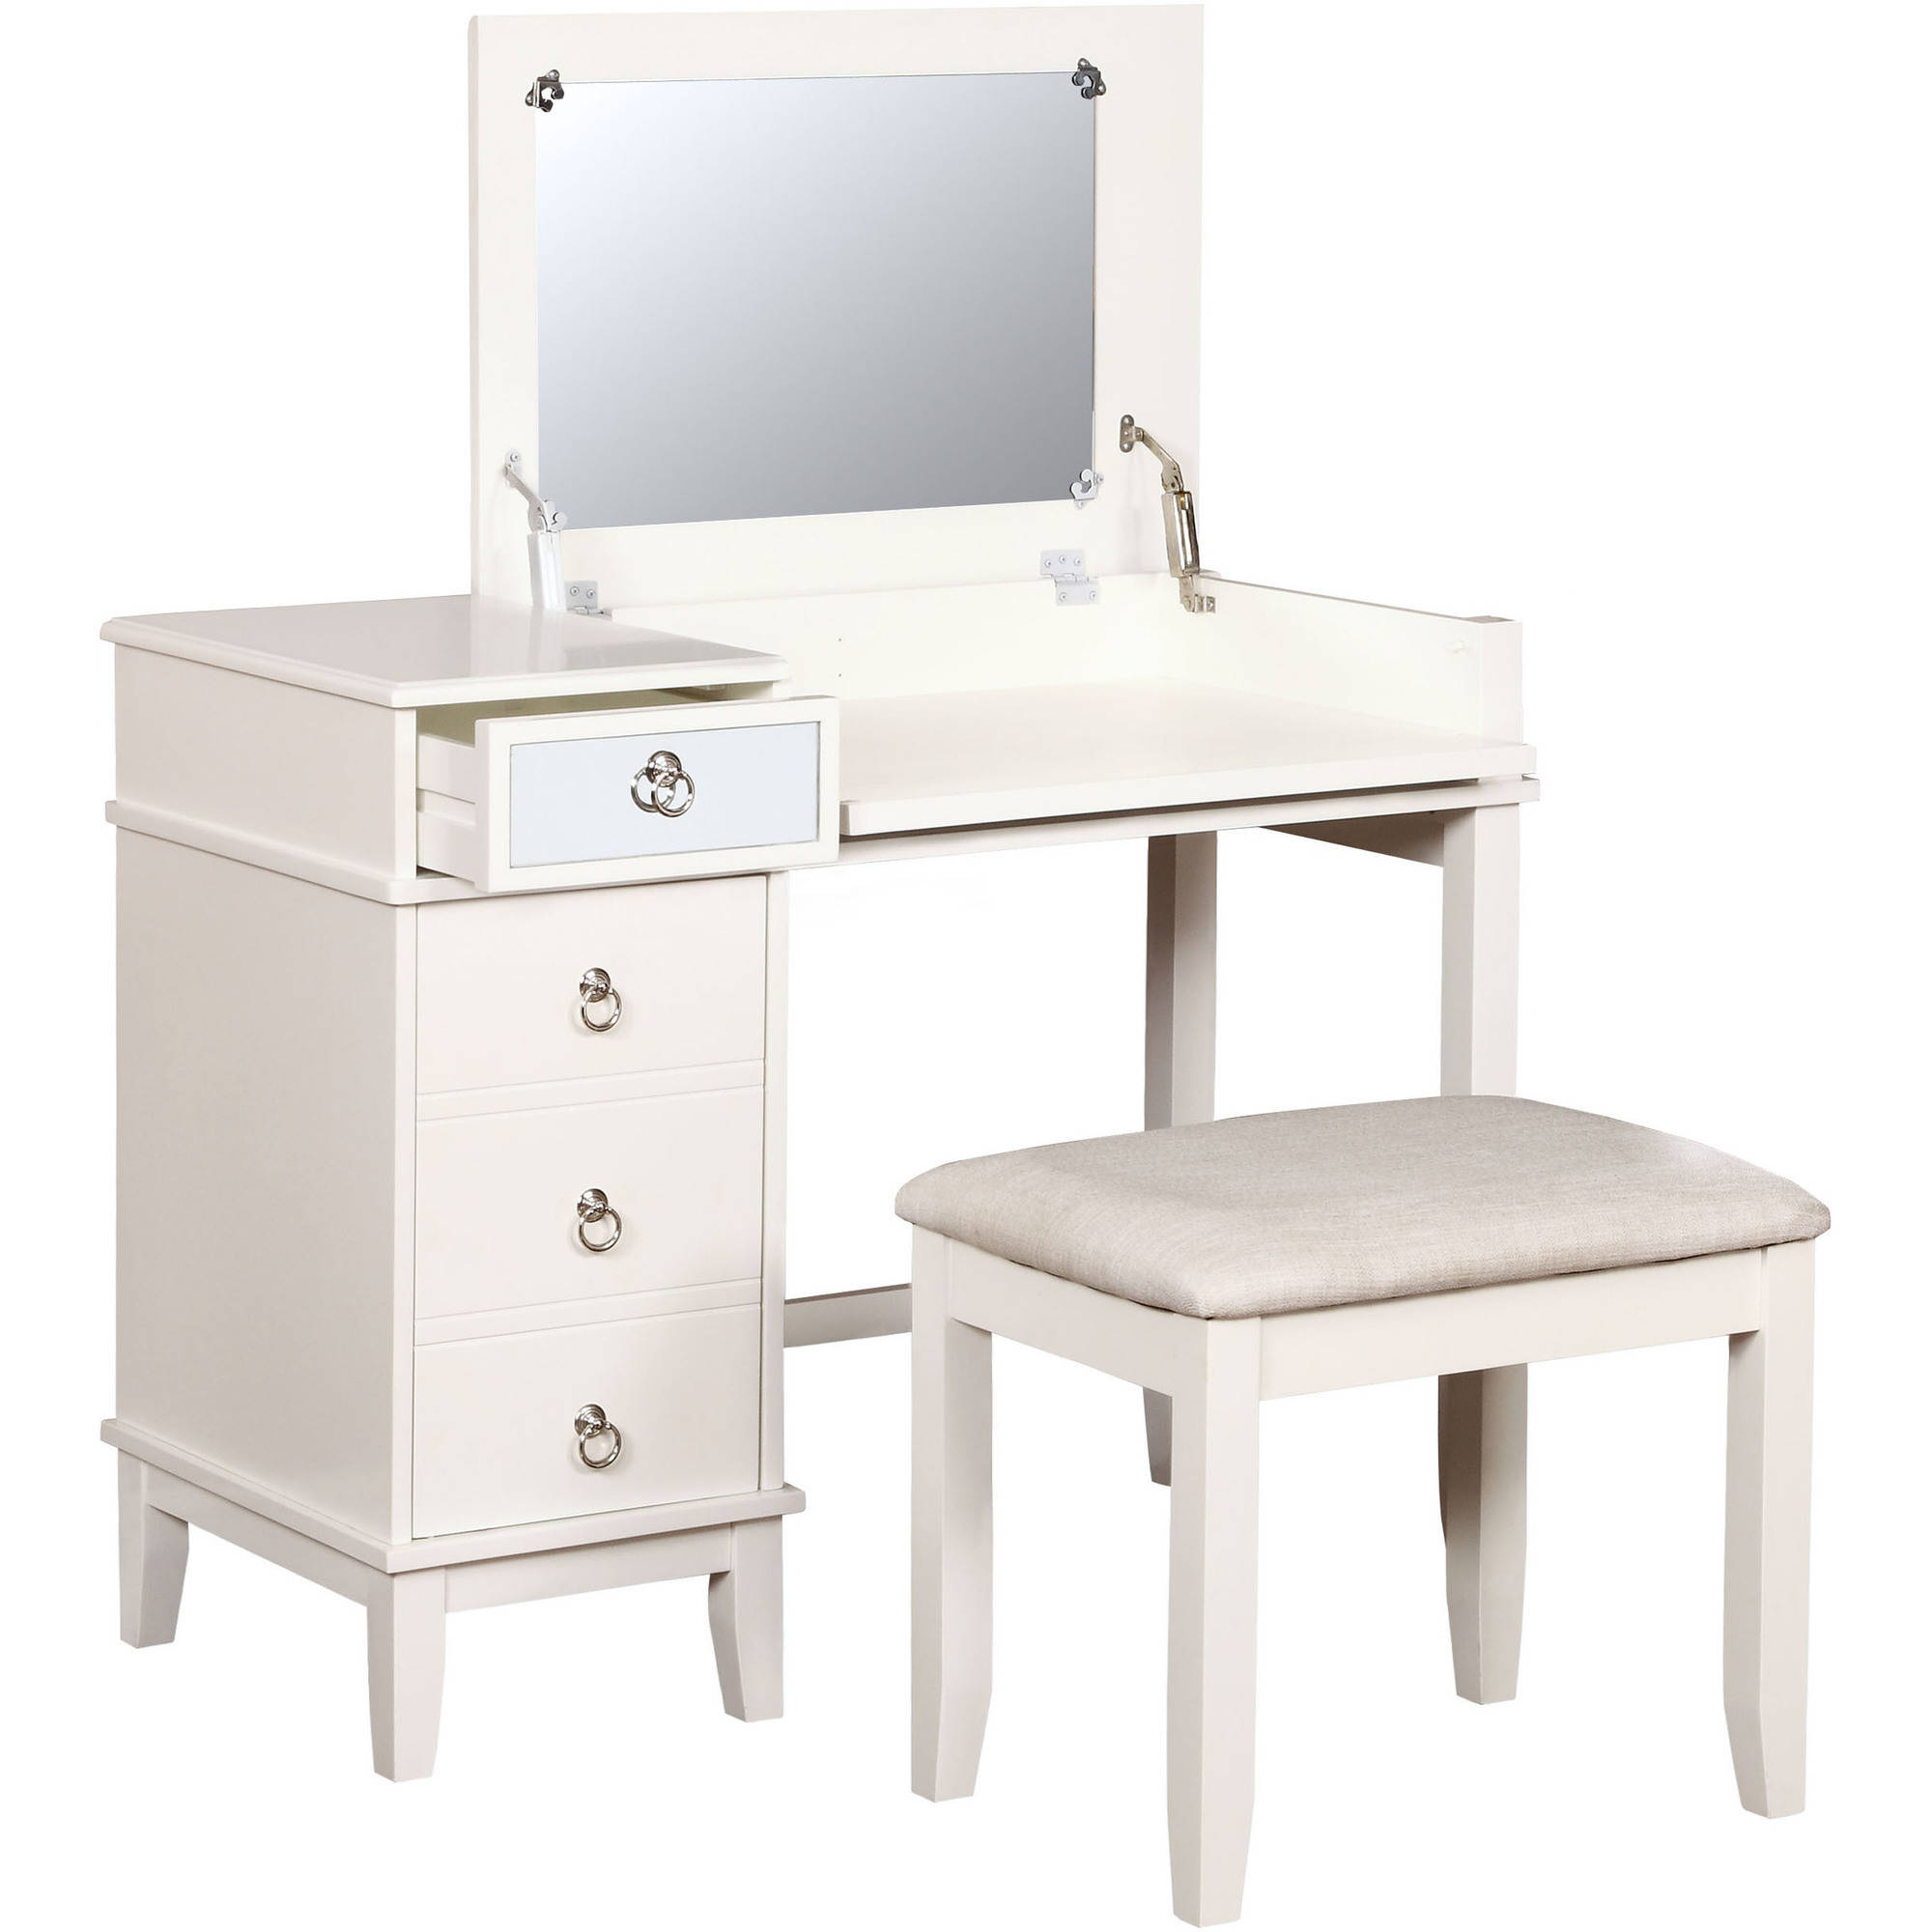 Linon Eva Vanity Set including Mirror and Stool, White, 18 inch Stool Height